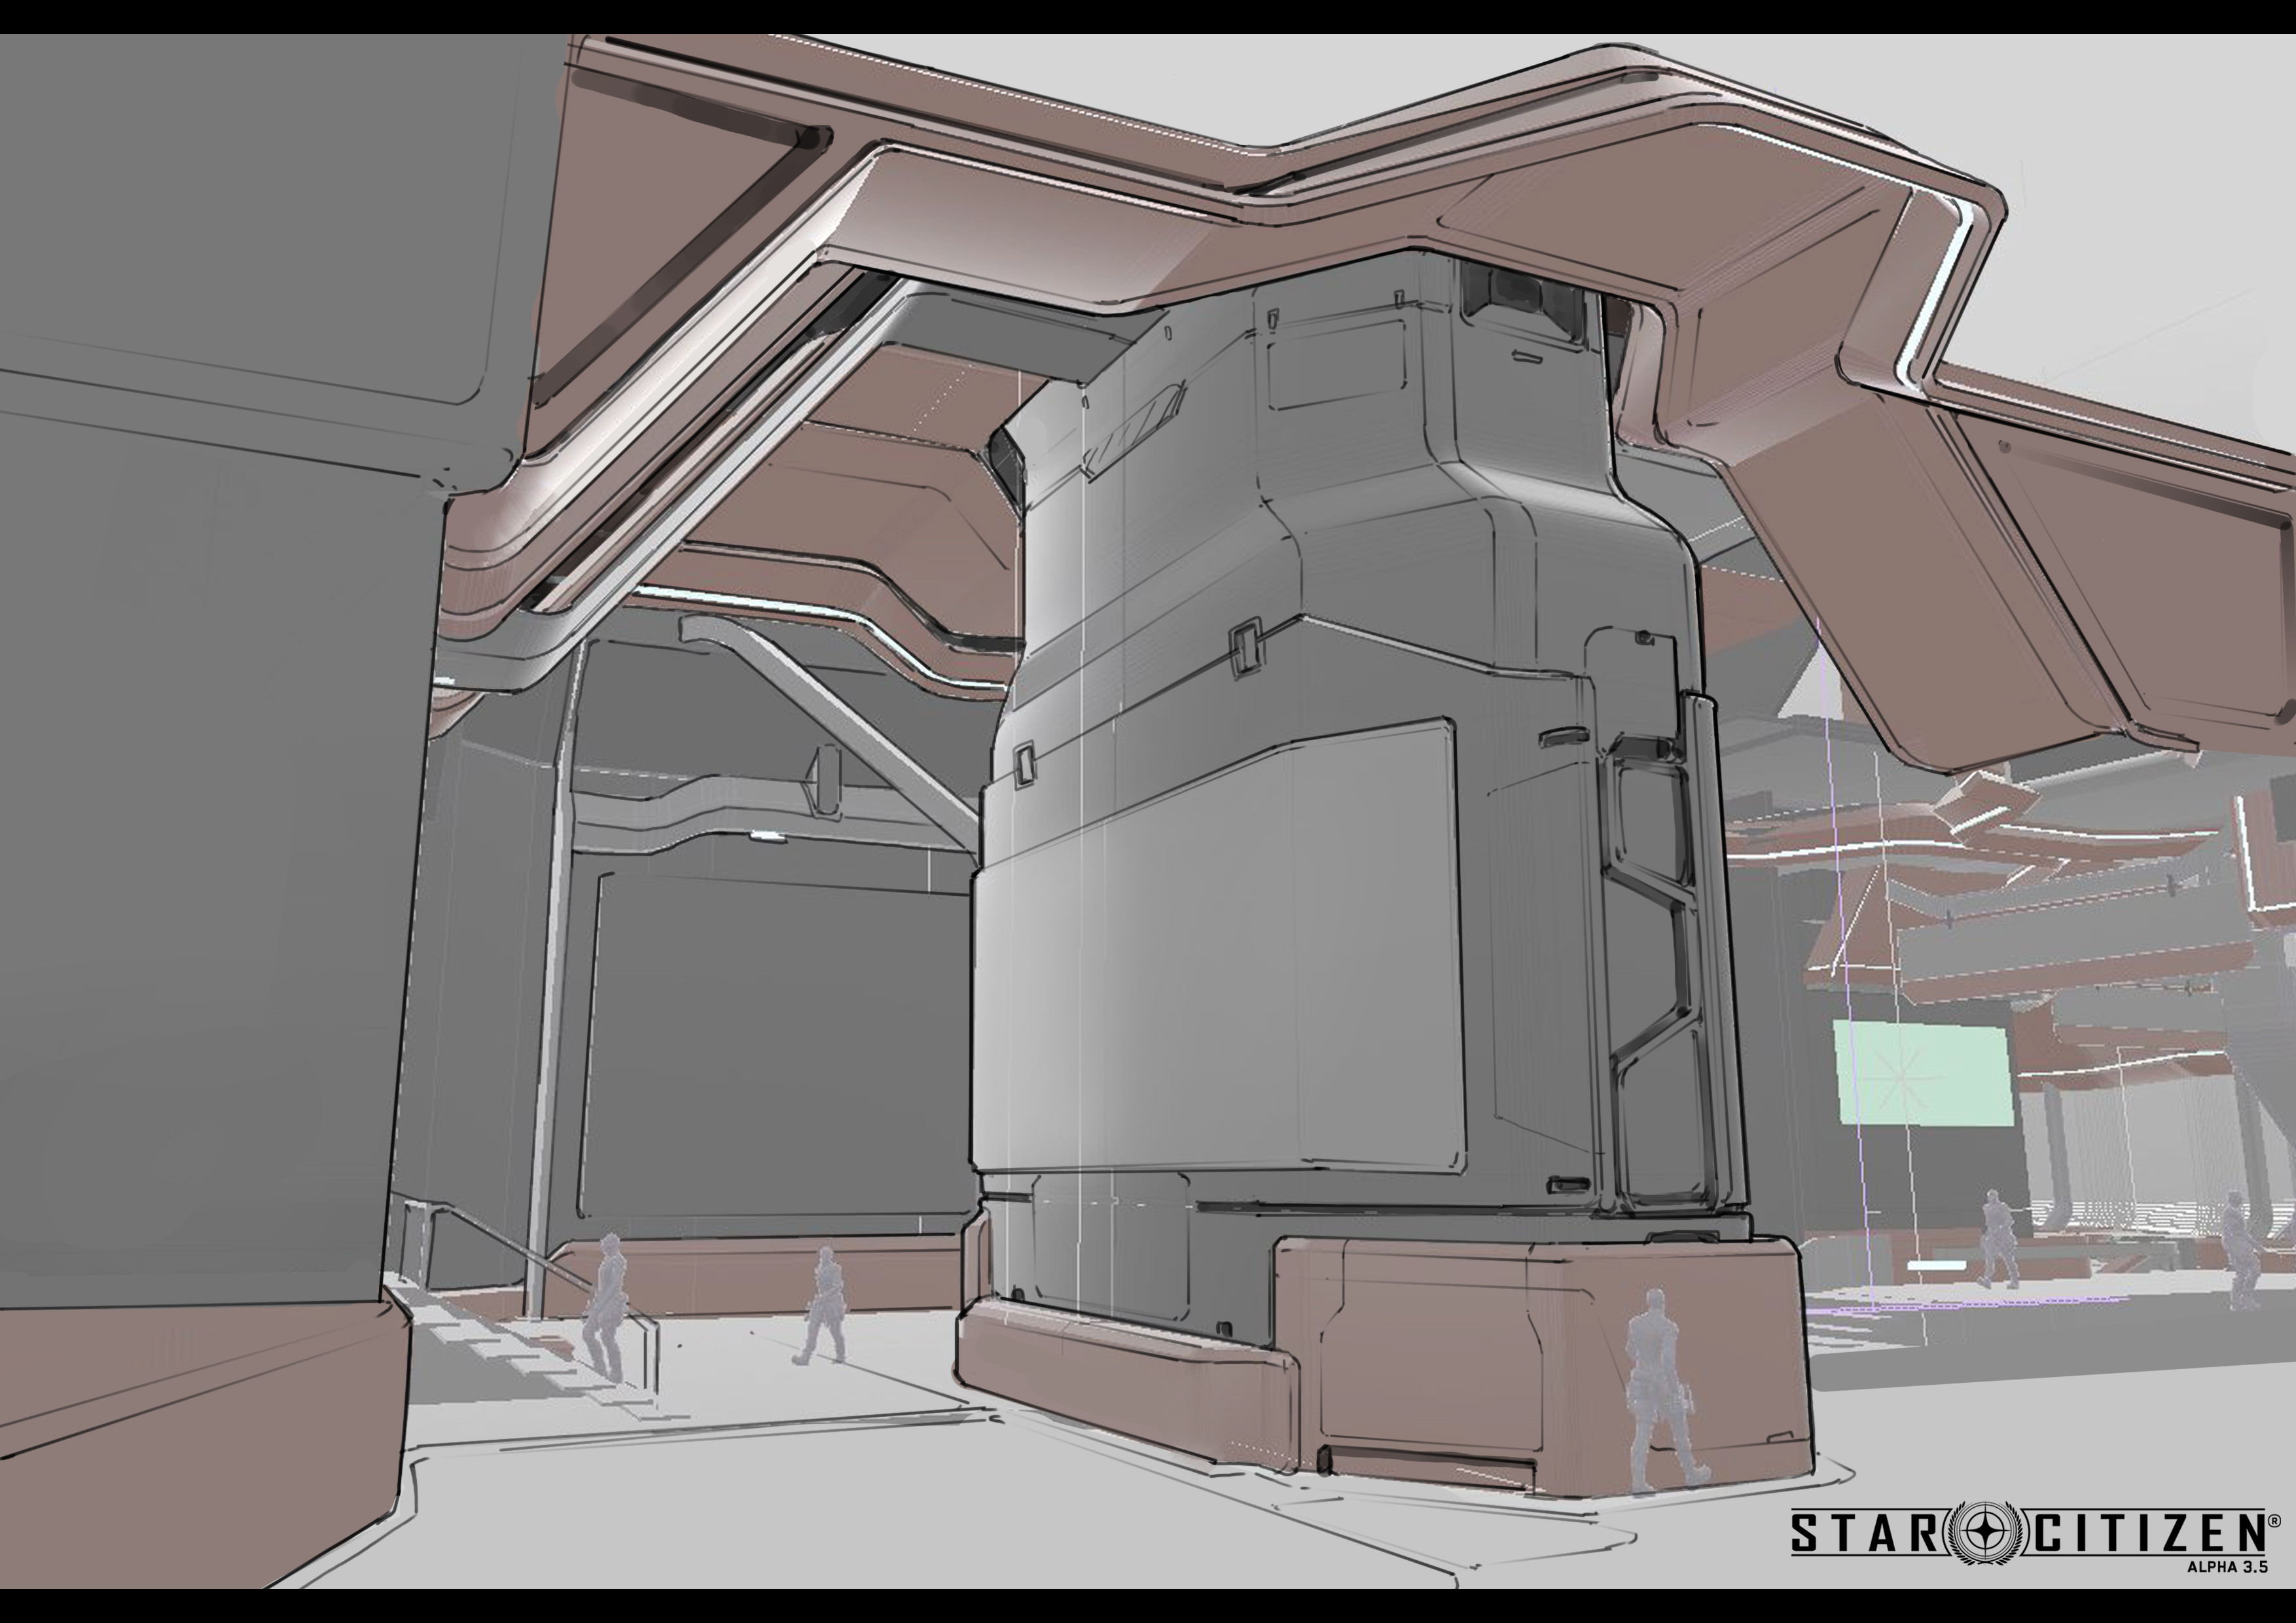 space port interior call out